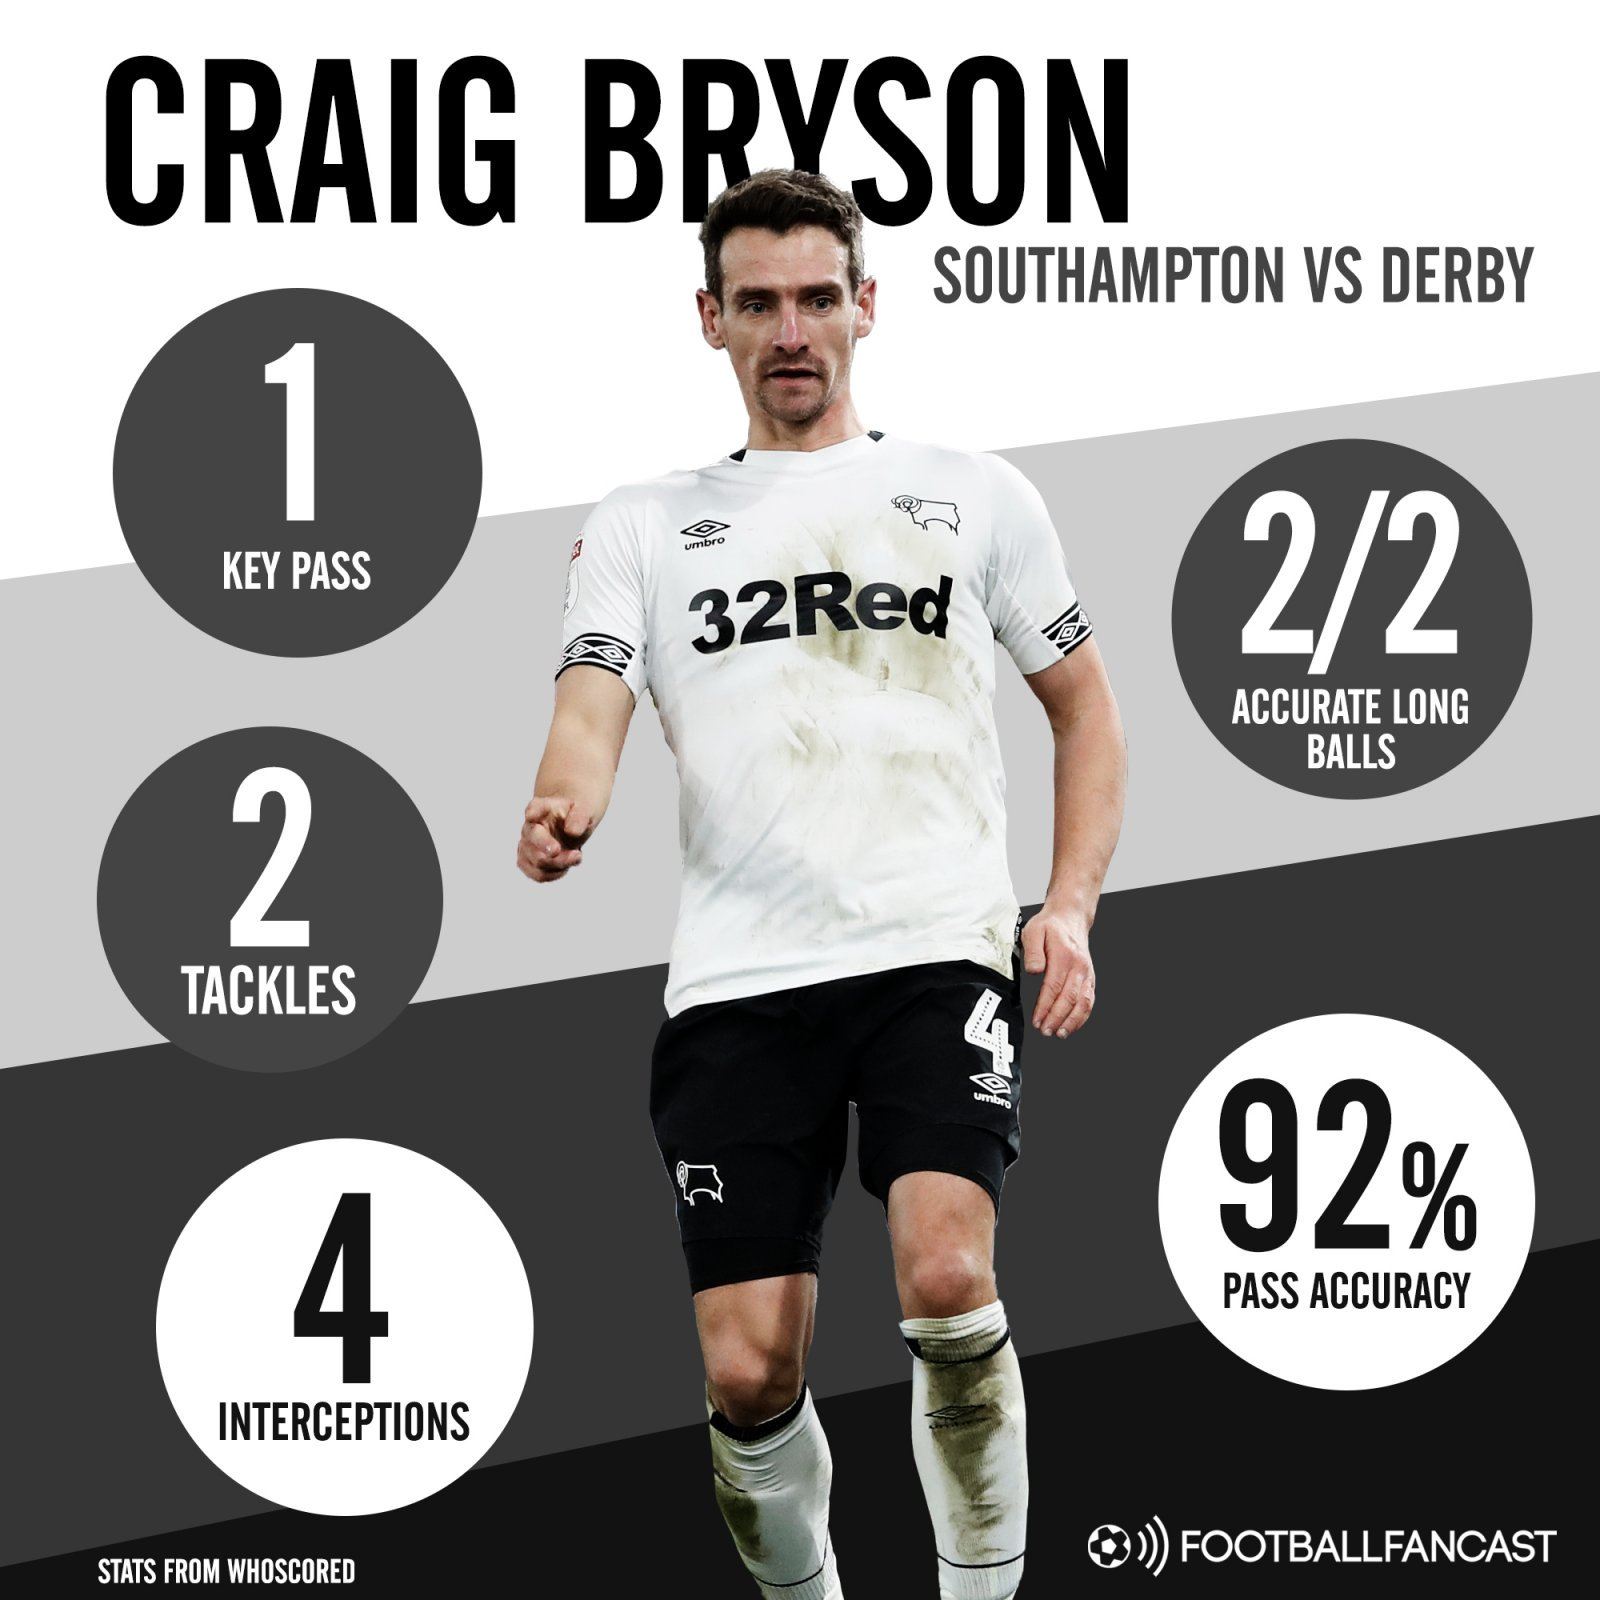 Derby County midfielder Craig Brysons stats vs Southampton - Opinion: Gerrard's chances of signing 5'7 target for Rangers have surely just become a lot worse